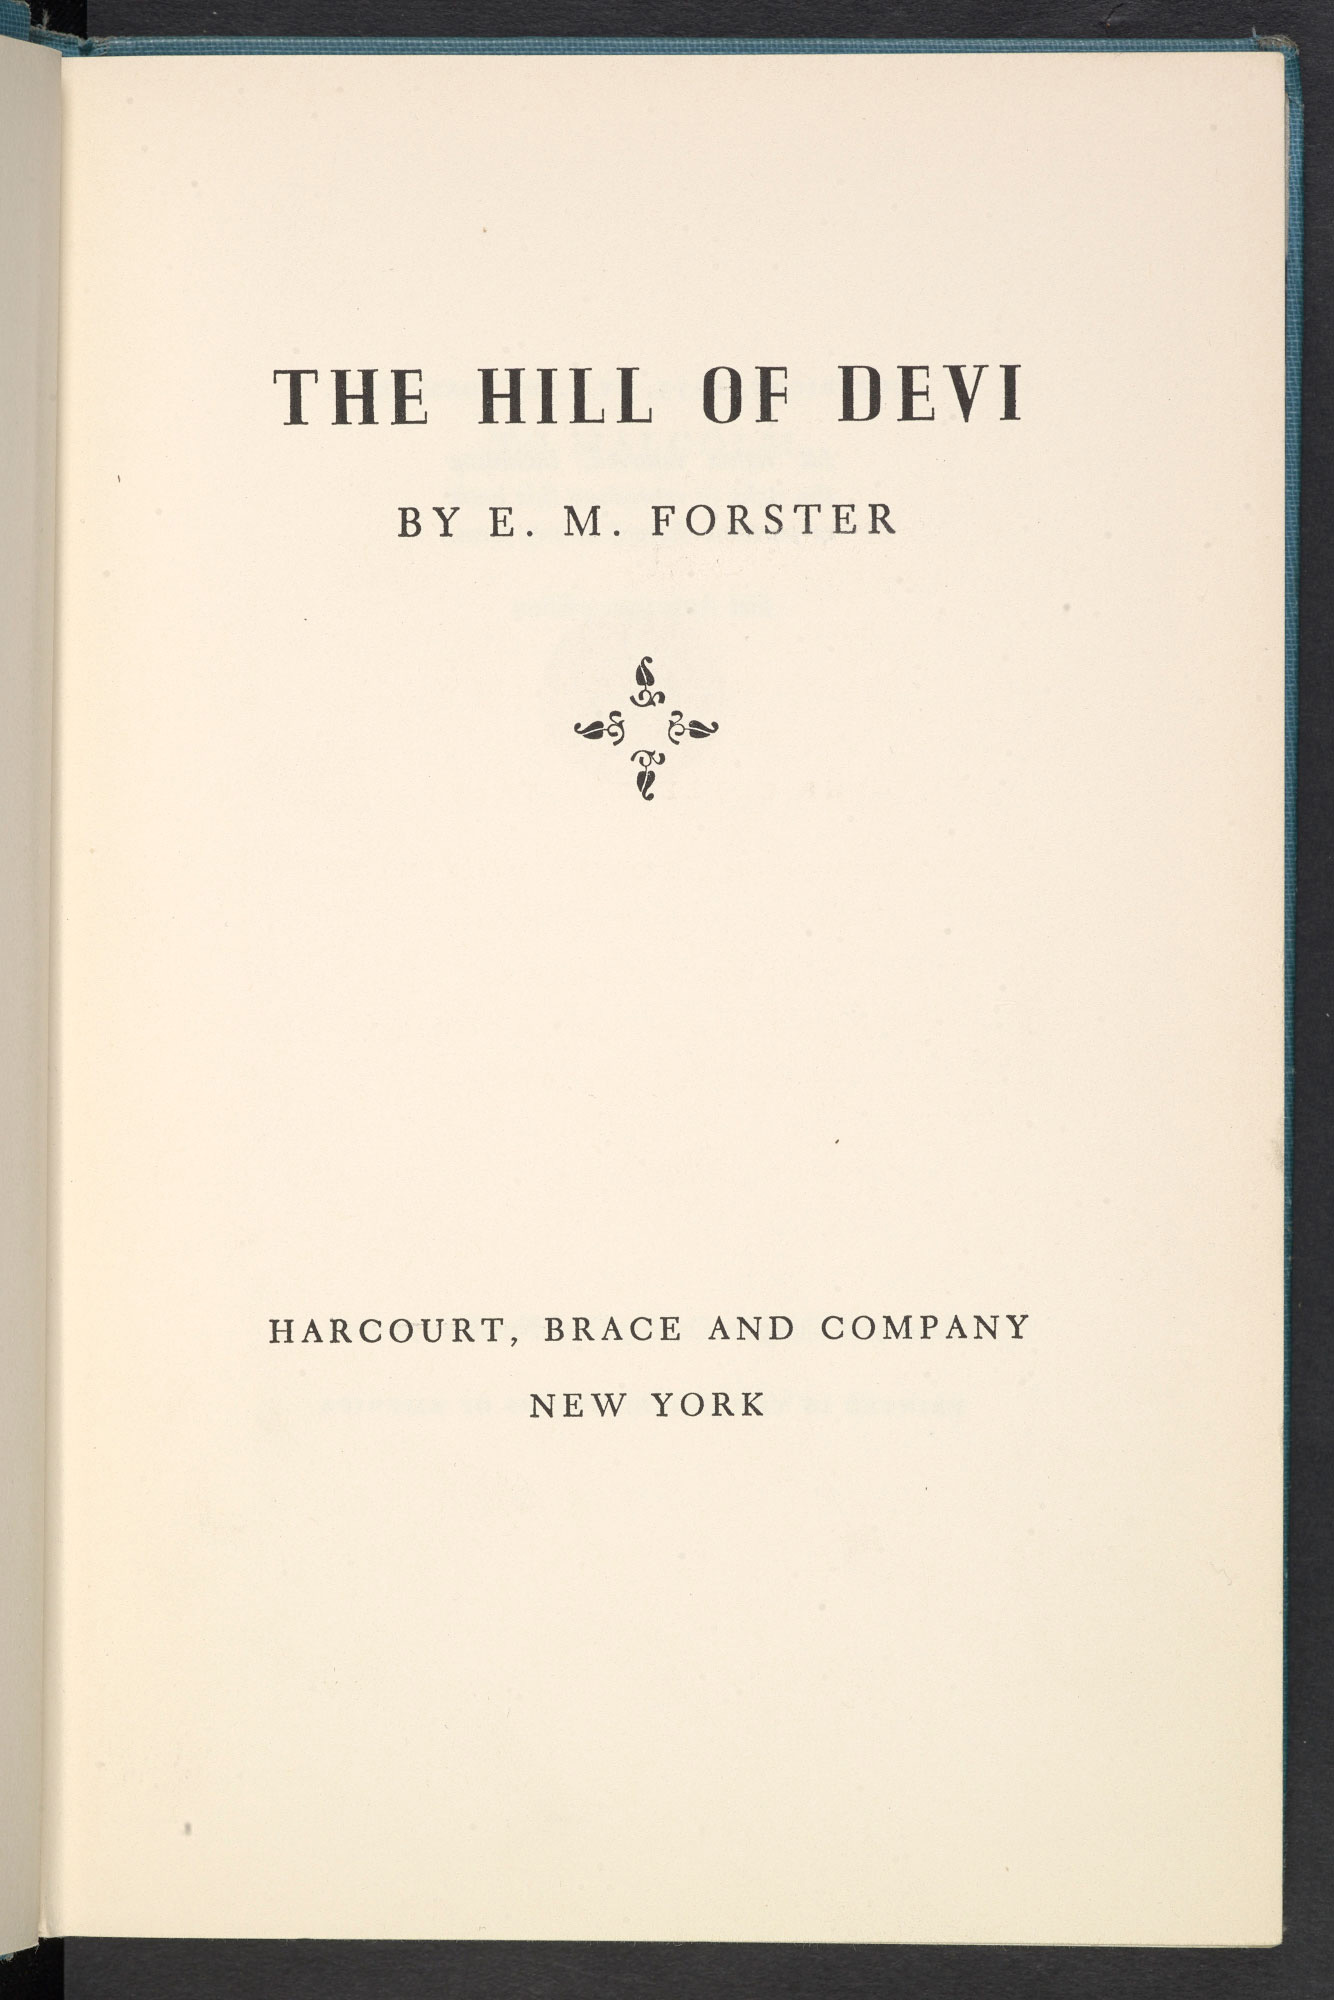 The Hill of Devi by E M Forster